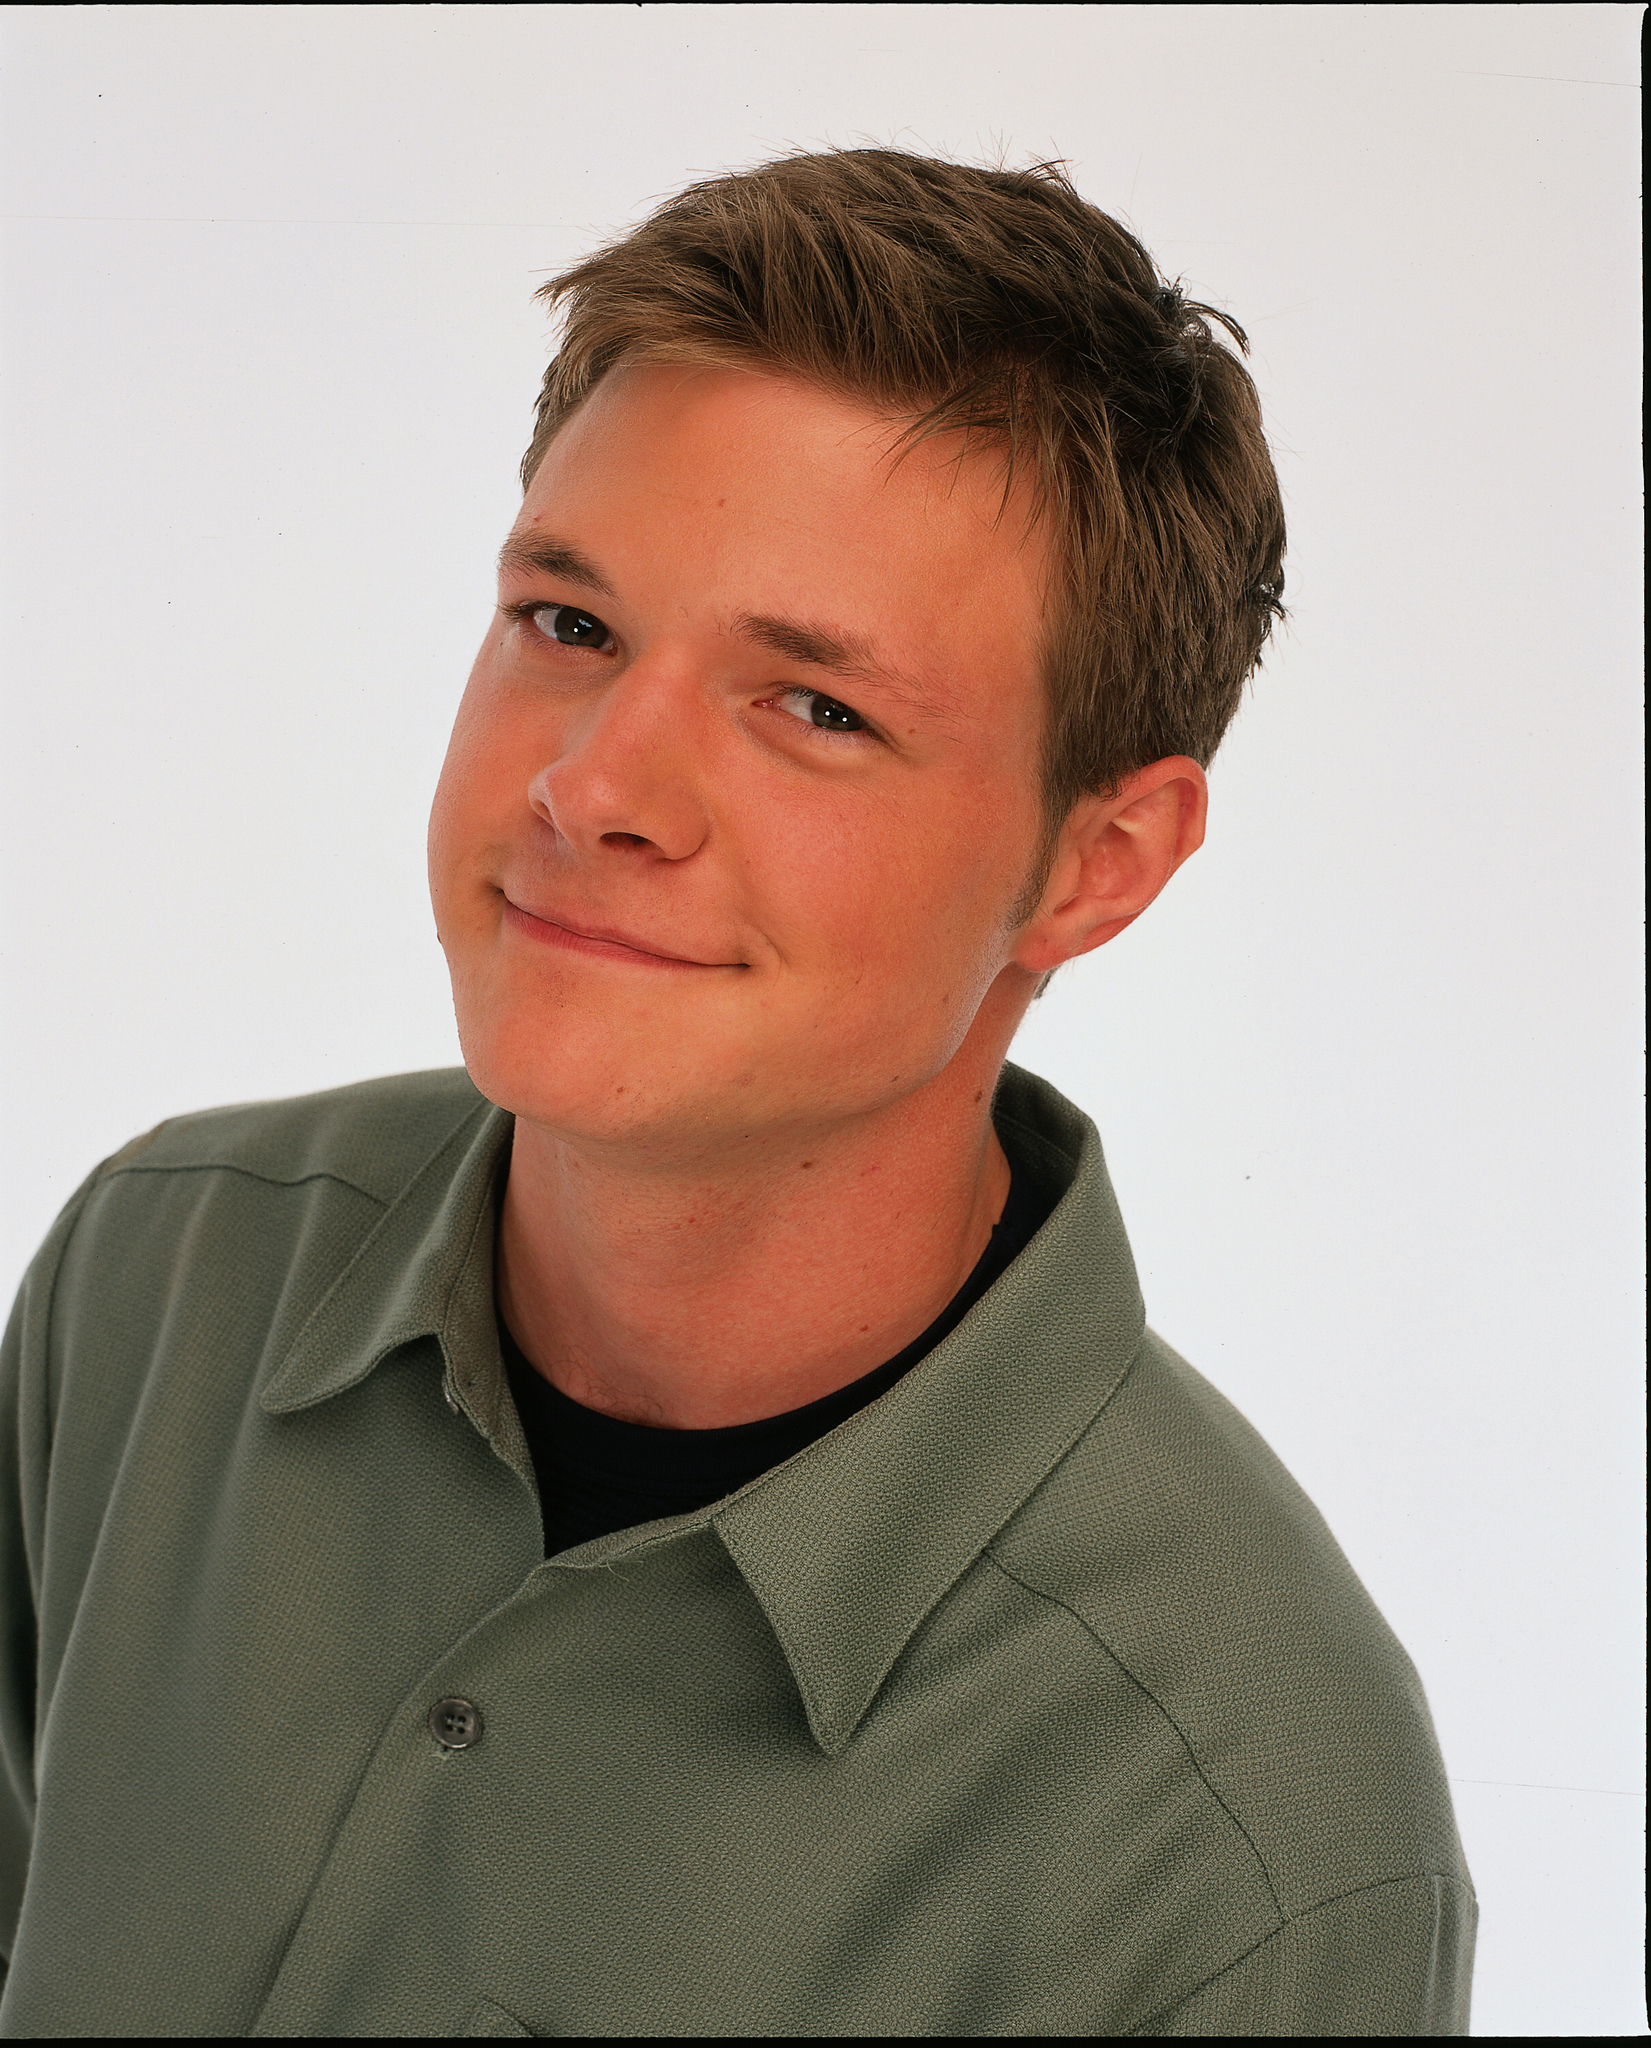 Nate Richert Sabrina, the teenage witch found its harvey dwight kinkle in nate richert. https www imdb com name nm0724921 mediaviewer rm1029614336